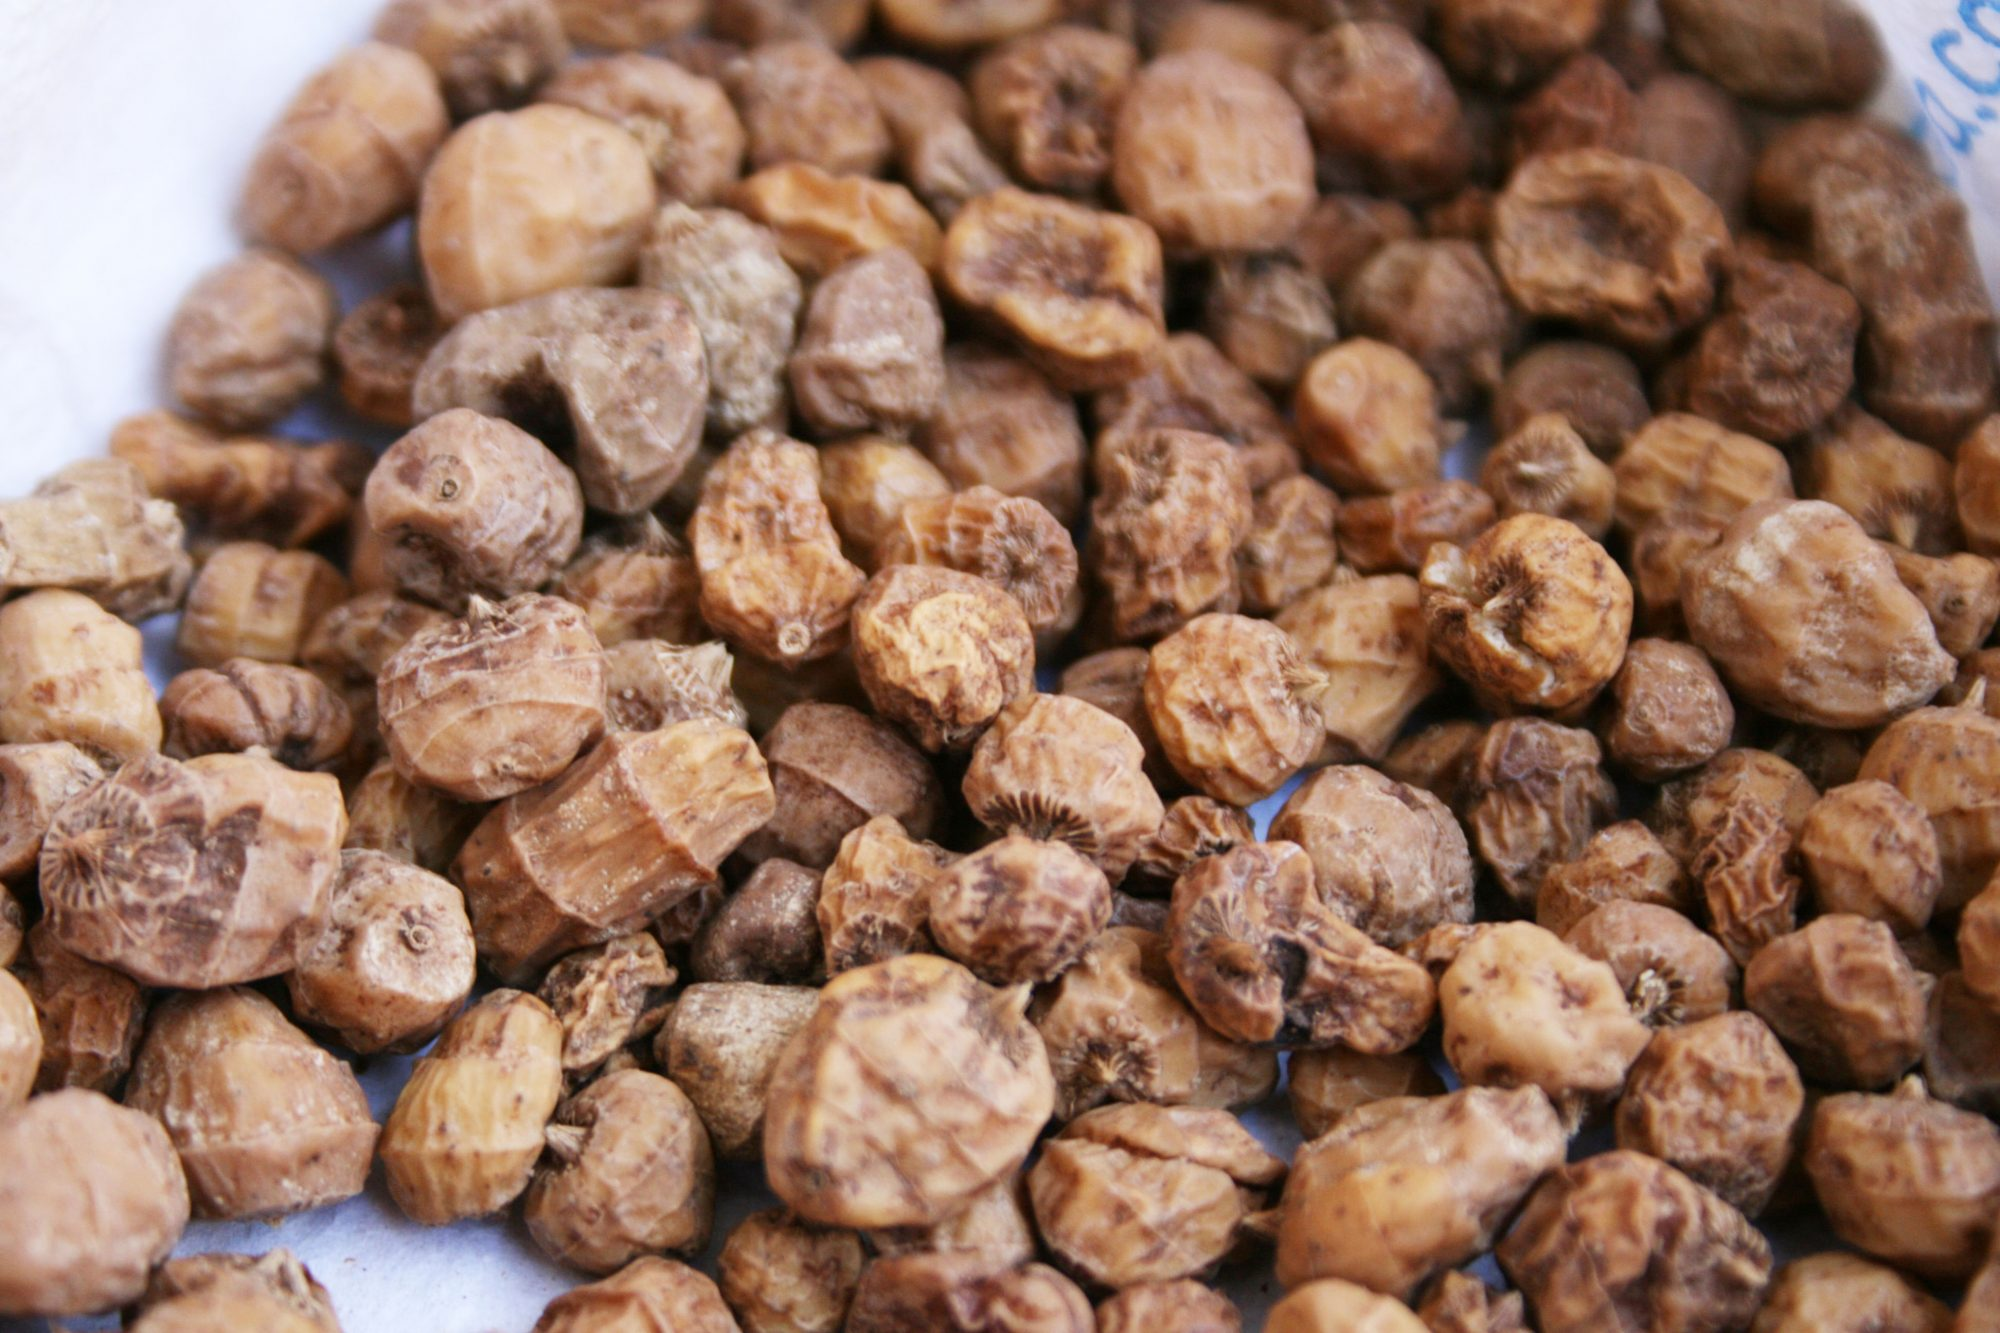 tiger nuts image